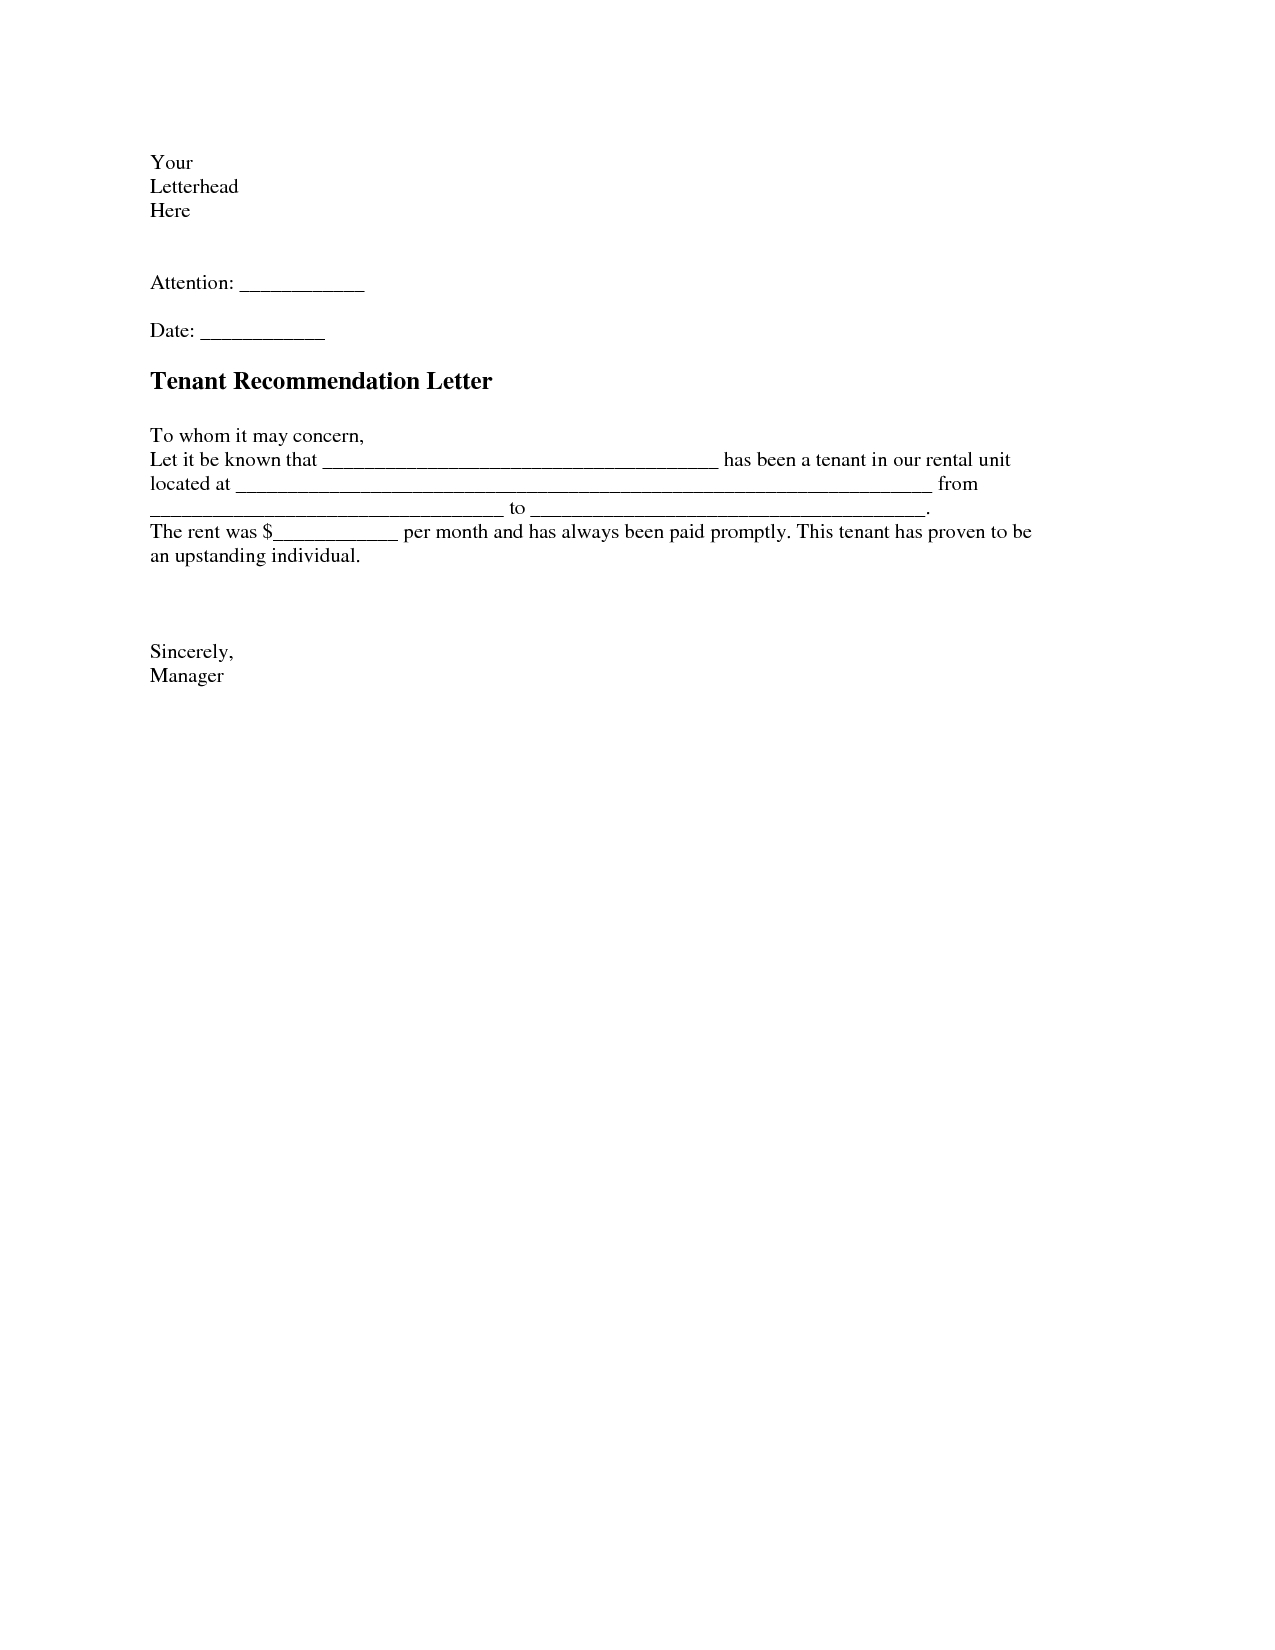 housing reference letter template Collection-Tenant Re mendation Letter A tenant re mendation letter is usually required by a serious landlord from previous landlords to ensure that the potential 4-t